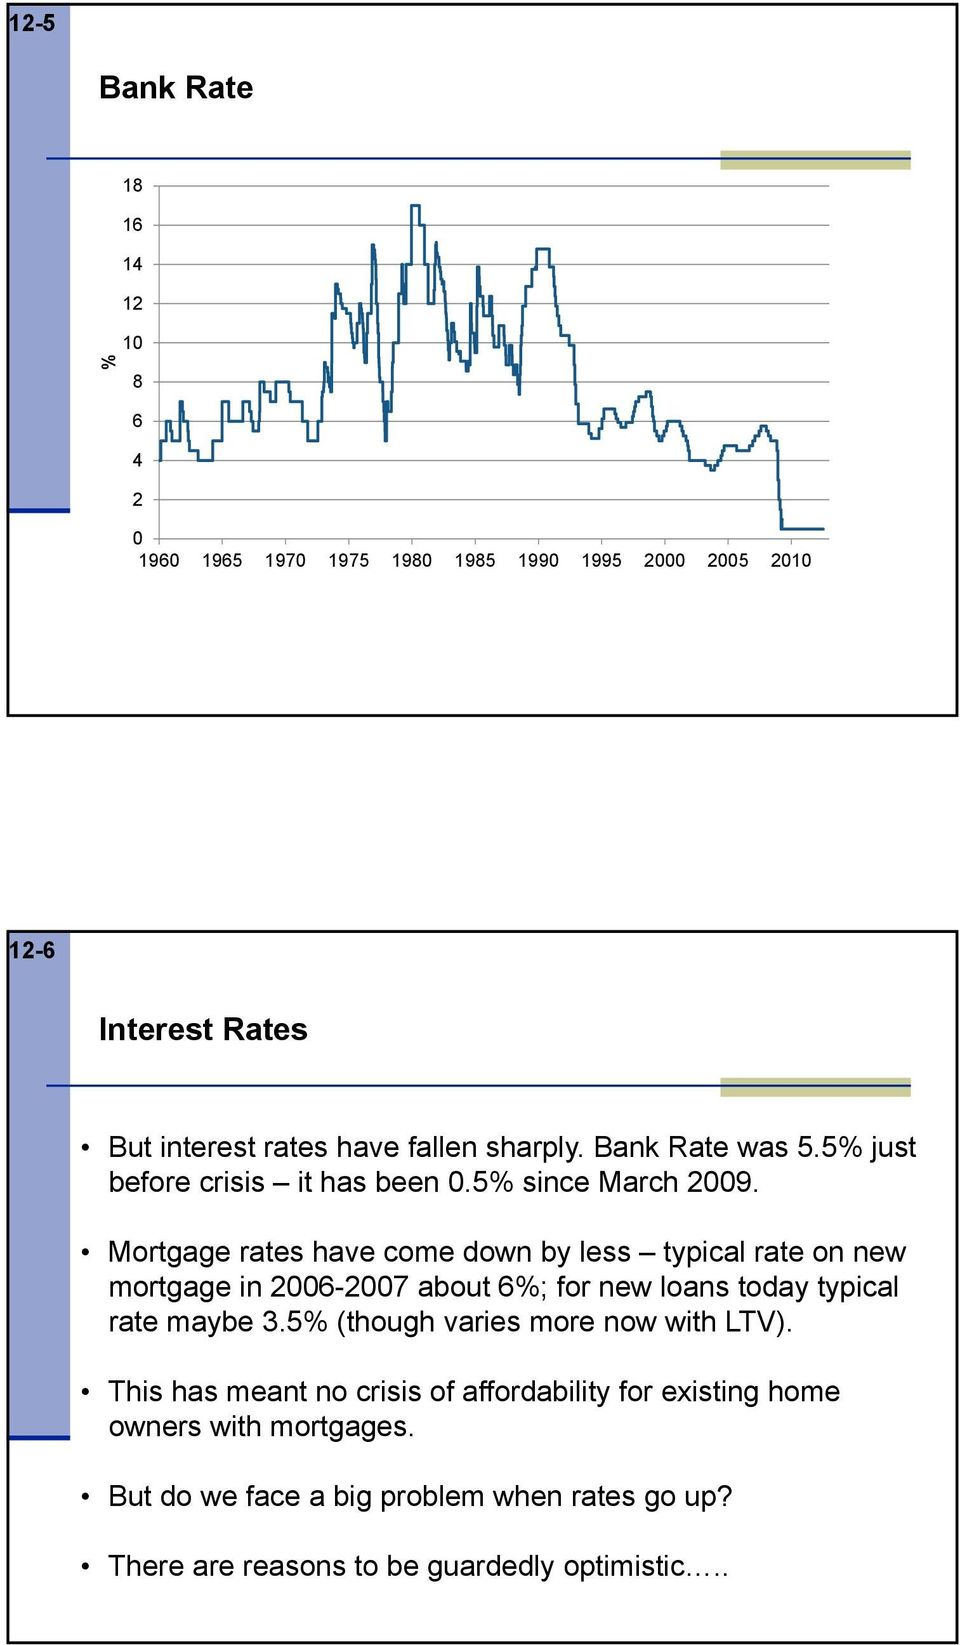 Mortgage rates have come down by less typical rate on new mortgage in 2006-2007 about 6%; for new loans today typical rate maybe 3.